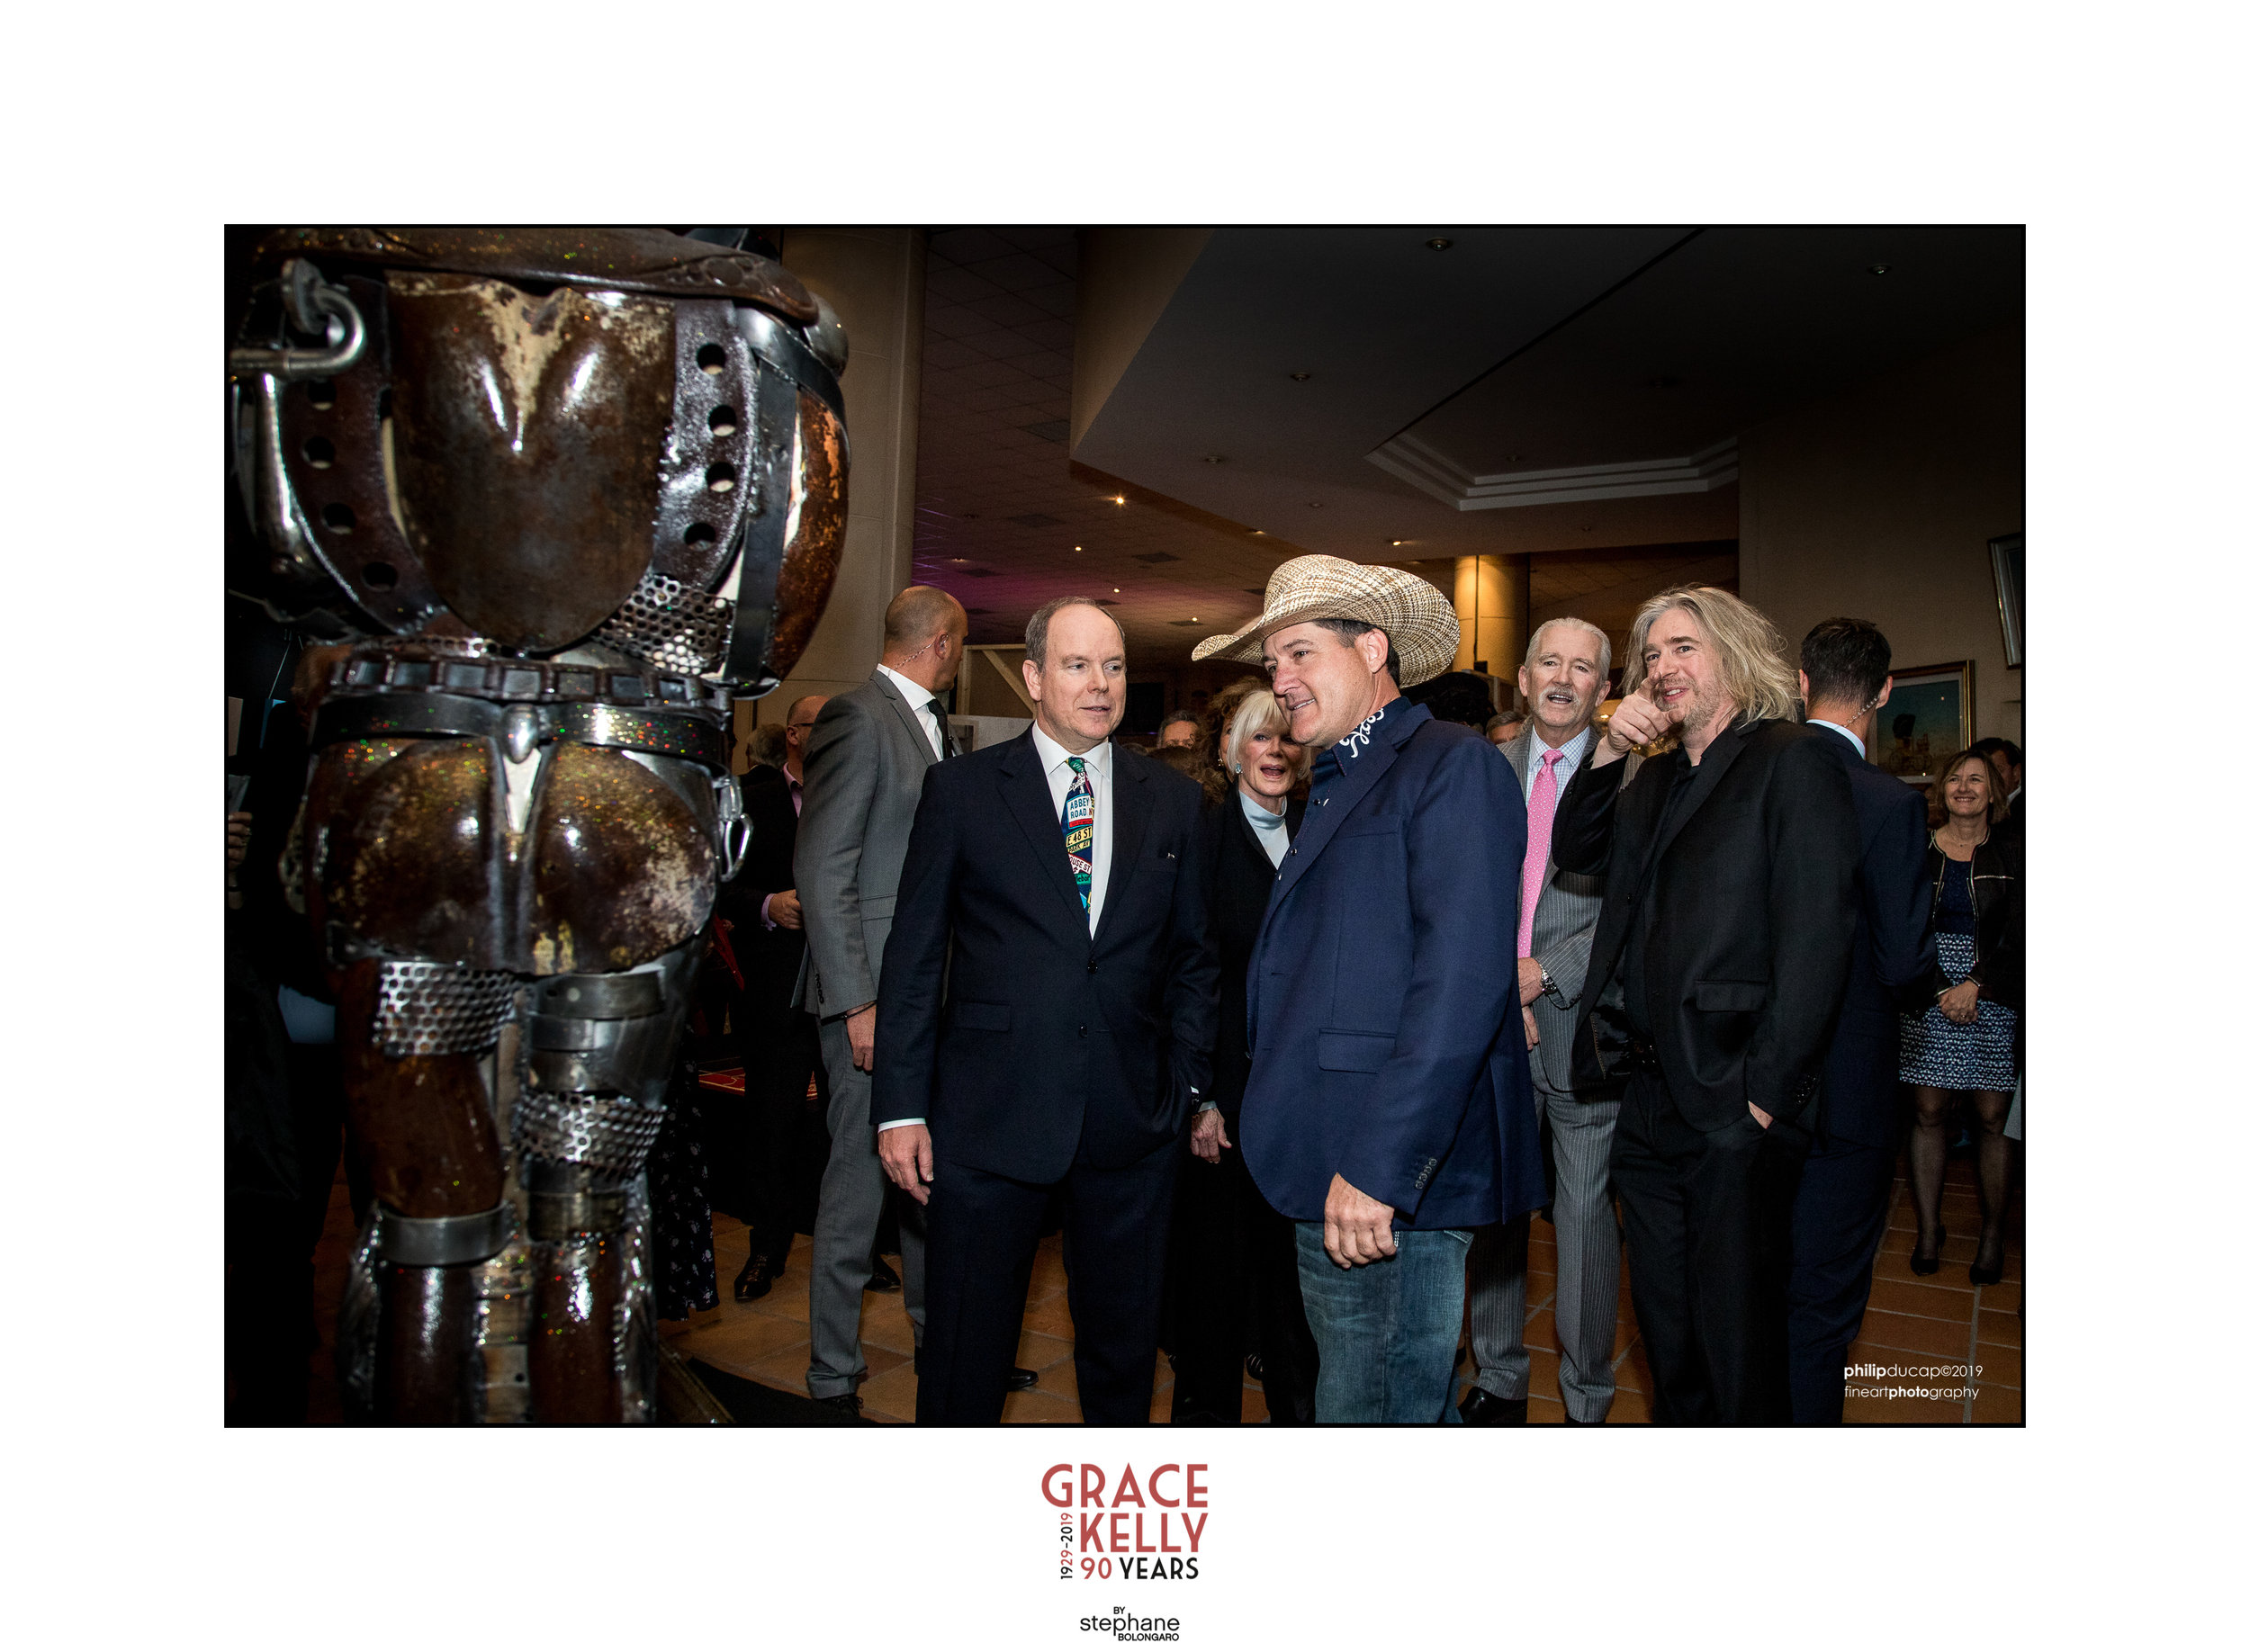 Prince Albert ll and John discuss the sculpture created for the event held in Monaco.